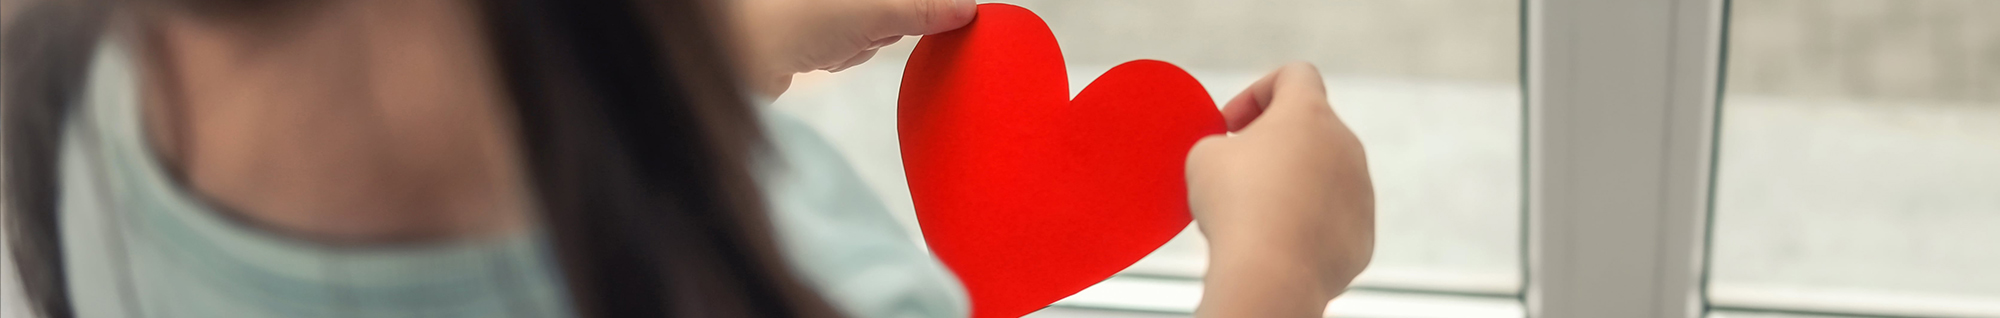 Little girl holding a red paper heart